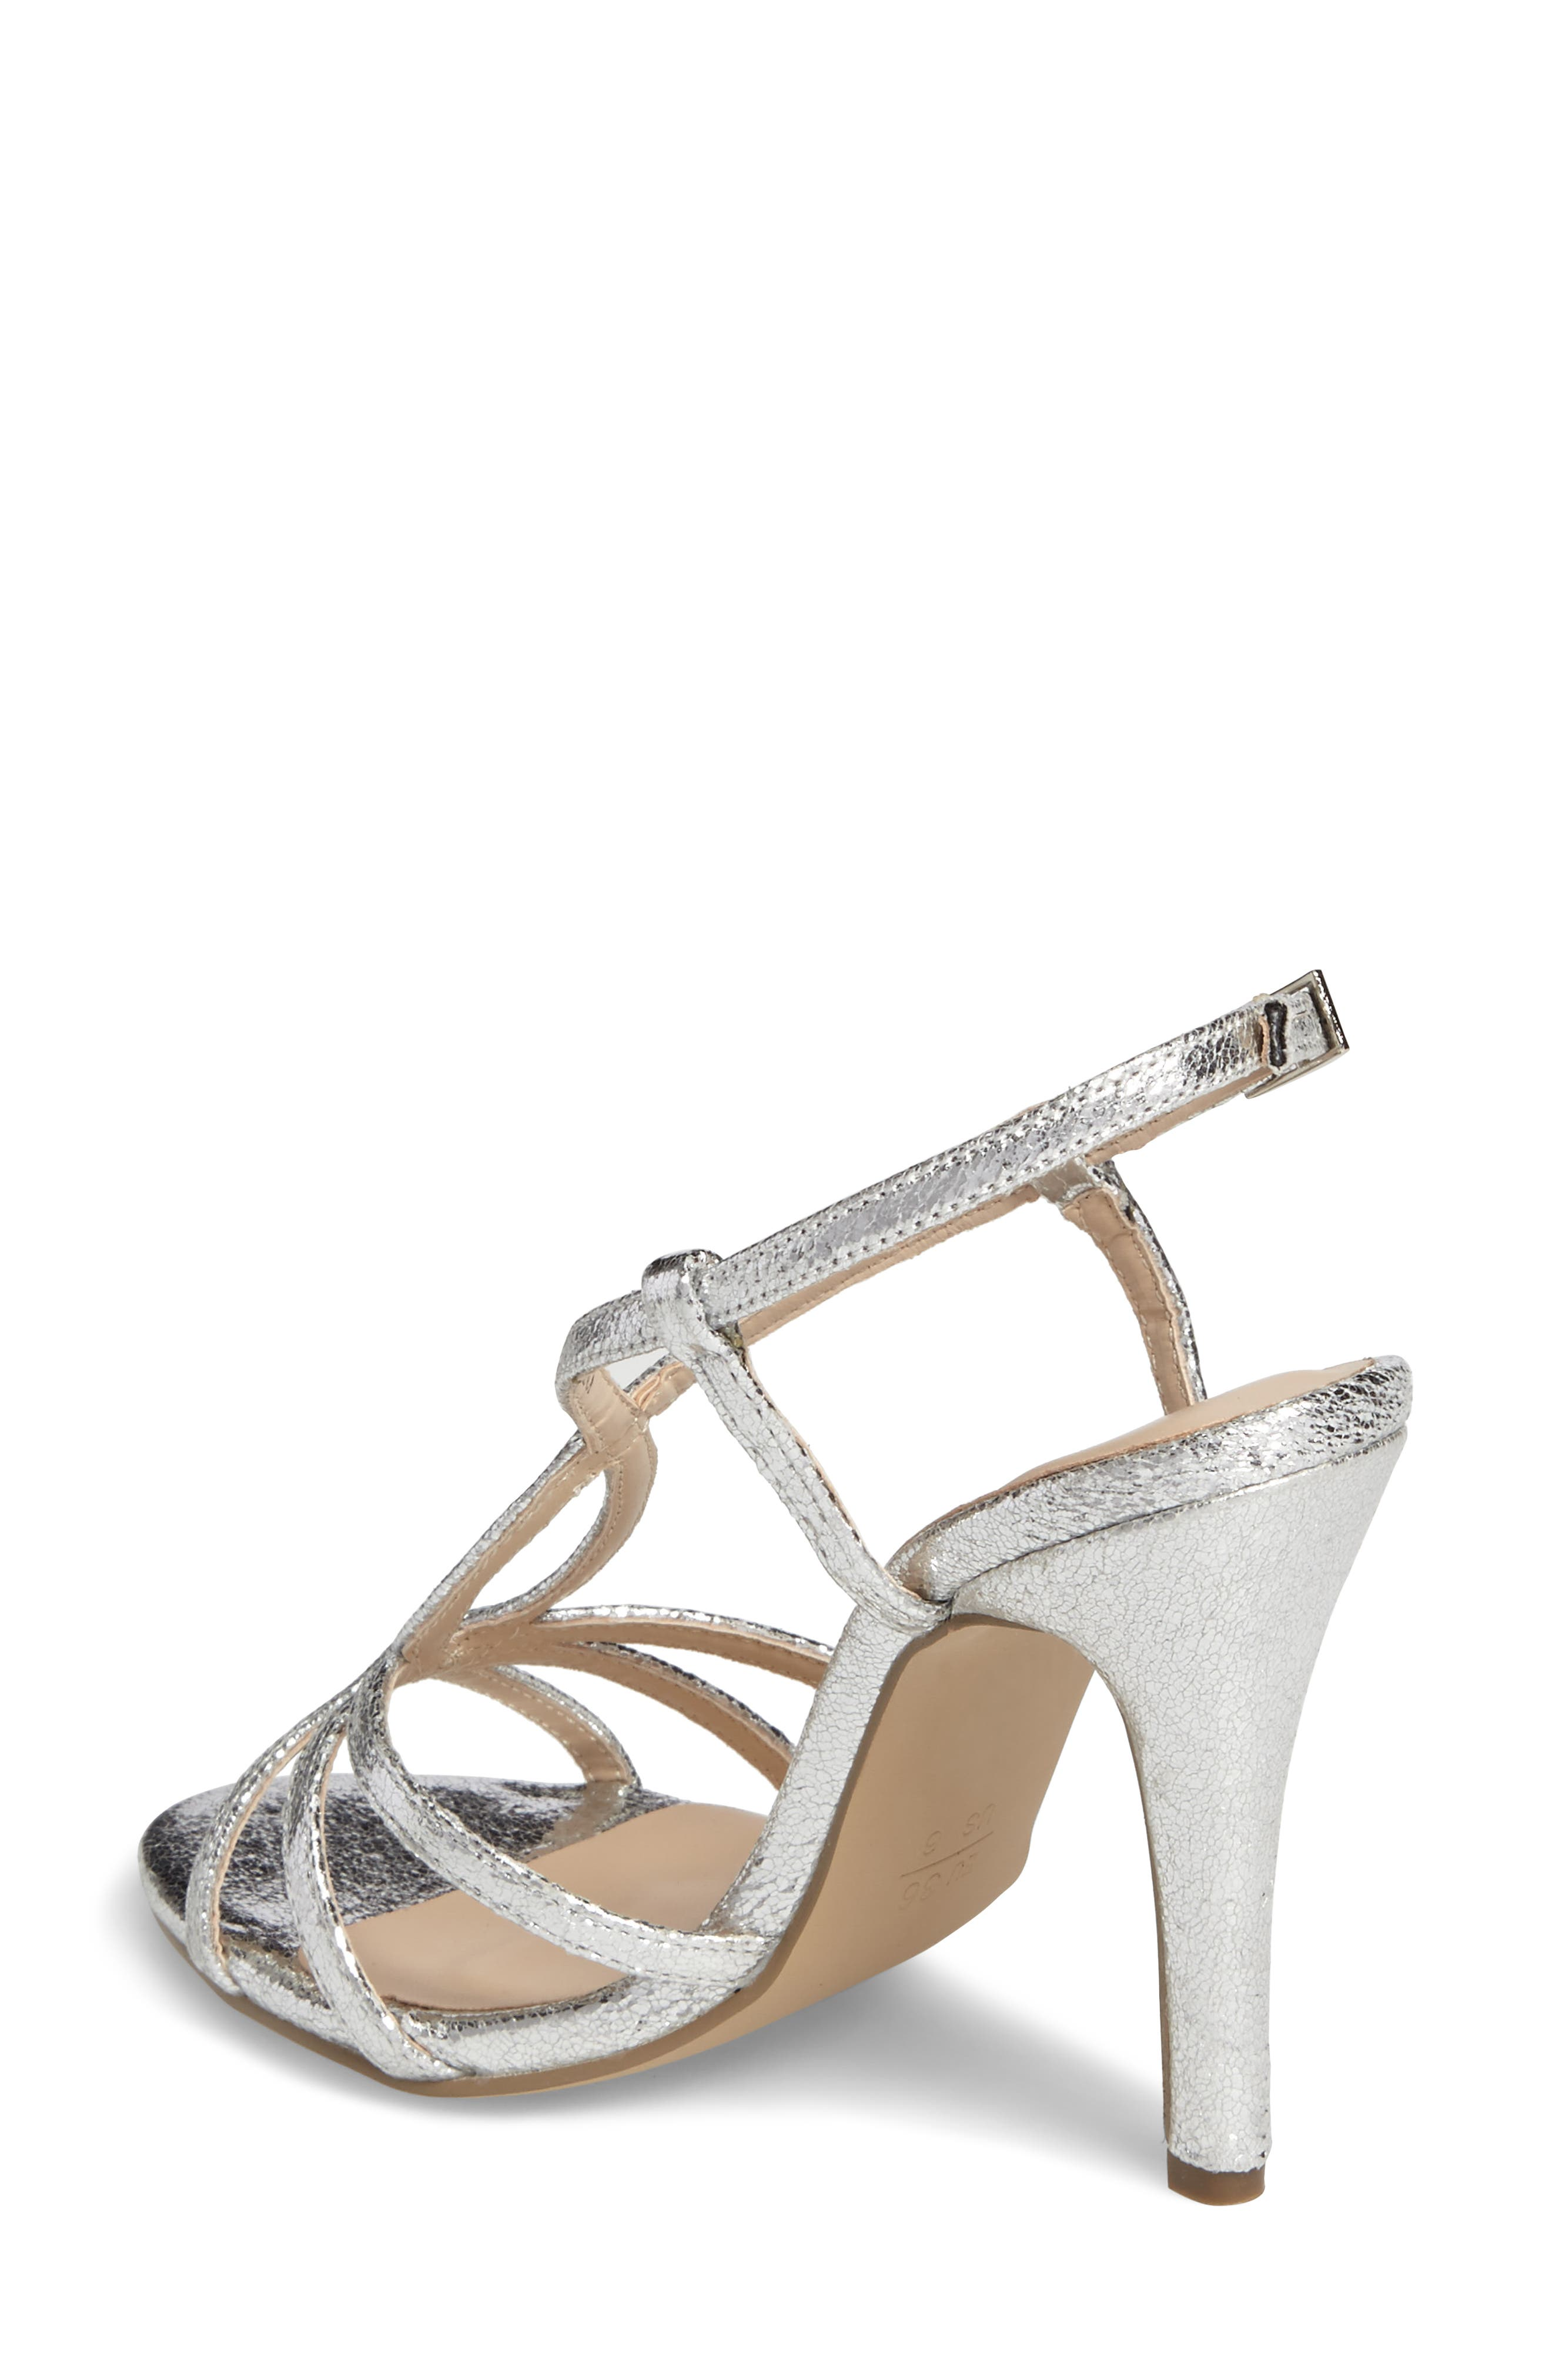 Magic Slingback Sandal,                             Alternate thumbnail 2, color,                             Silver